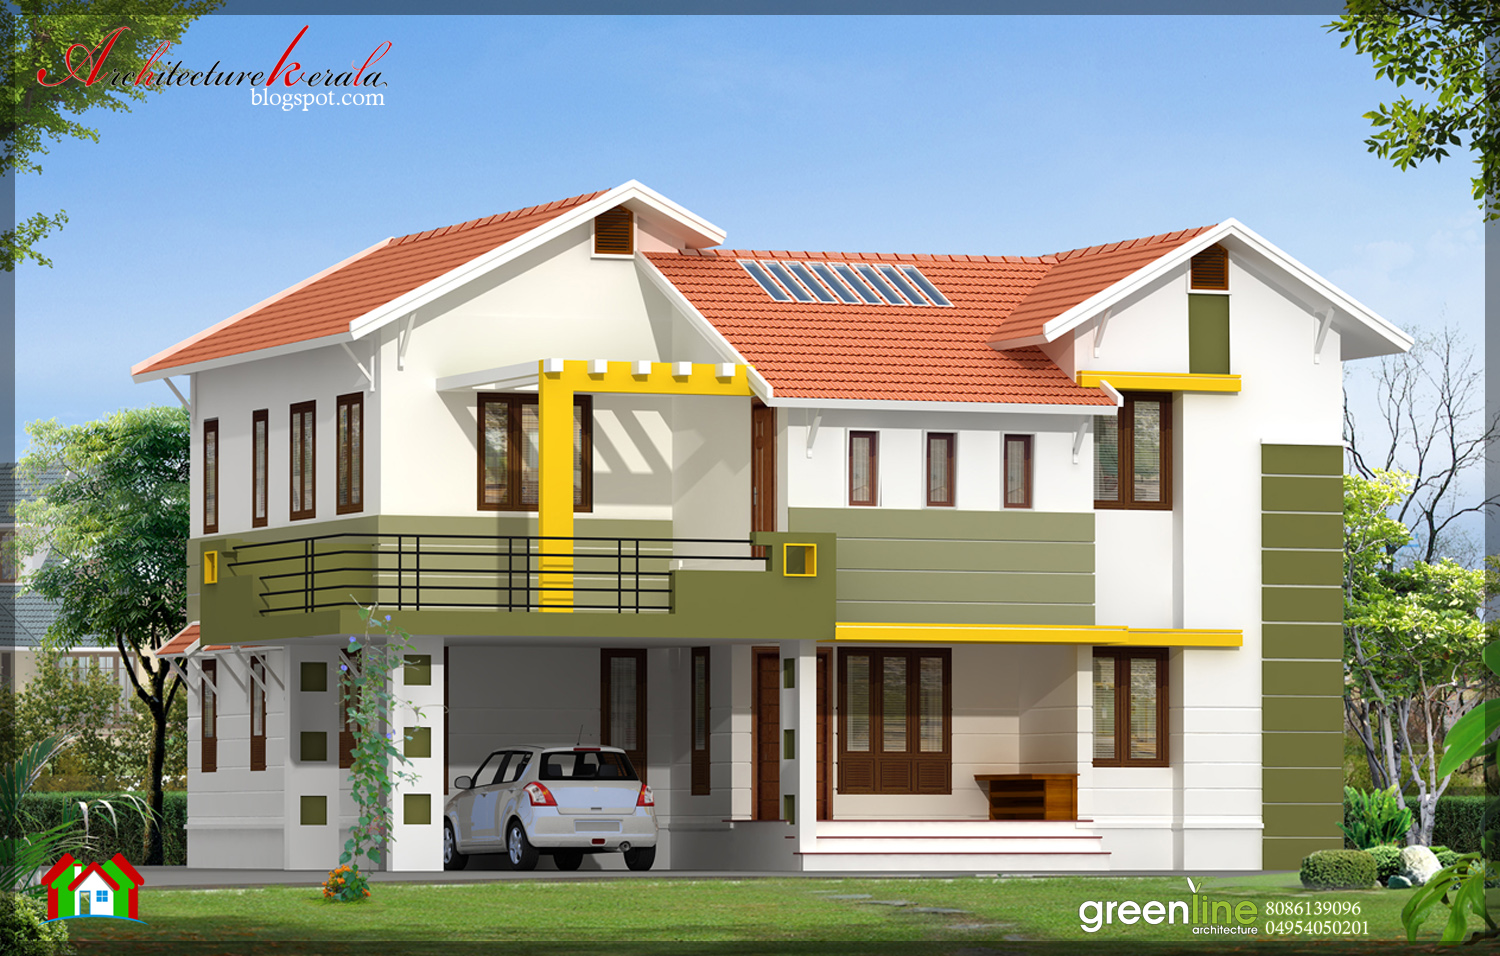 Architecture kerala 4 bhk contemporary style indian home for Best architecture home design in india